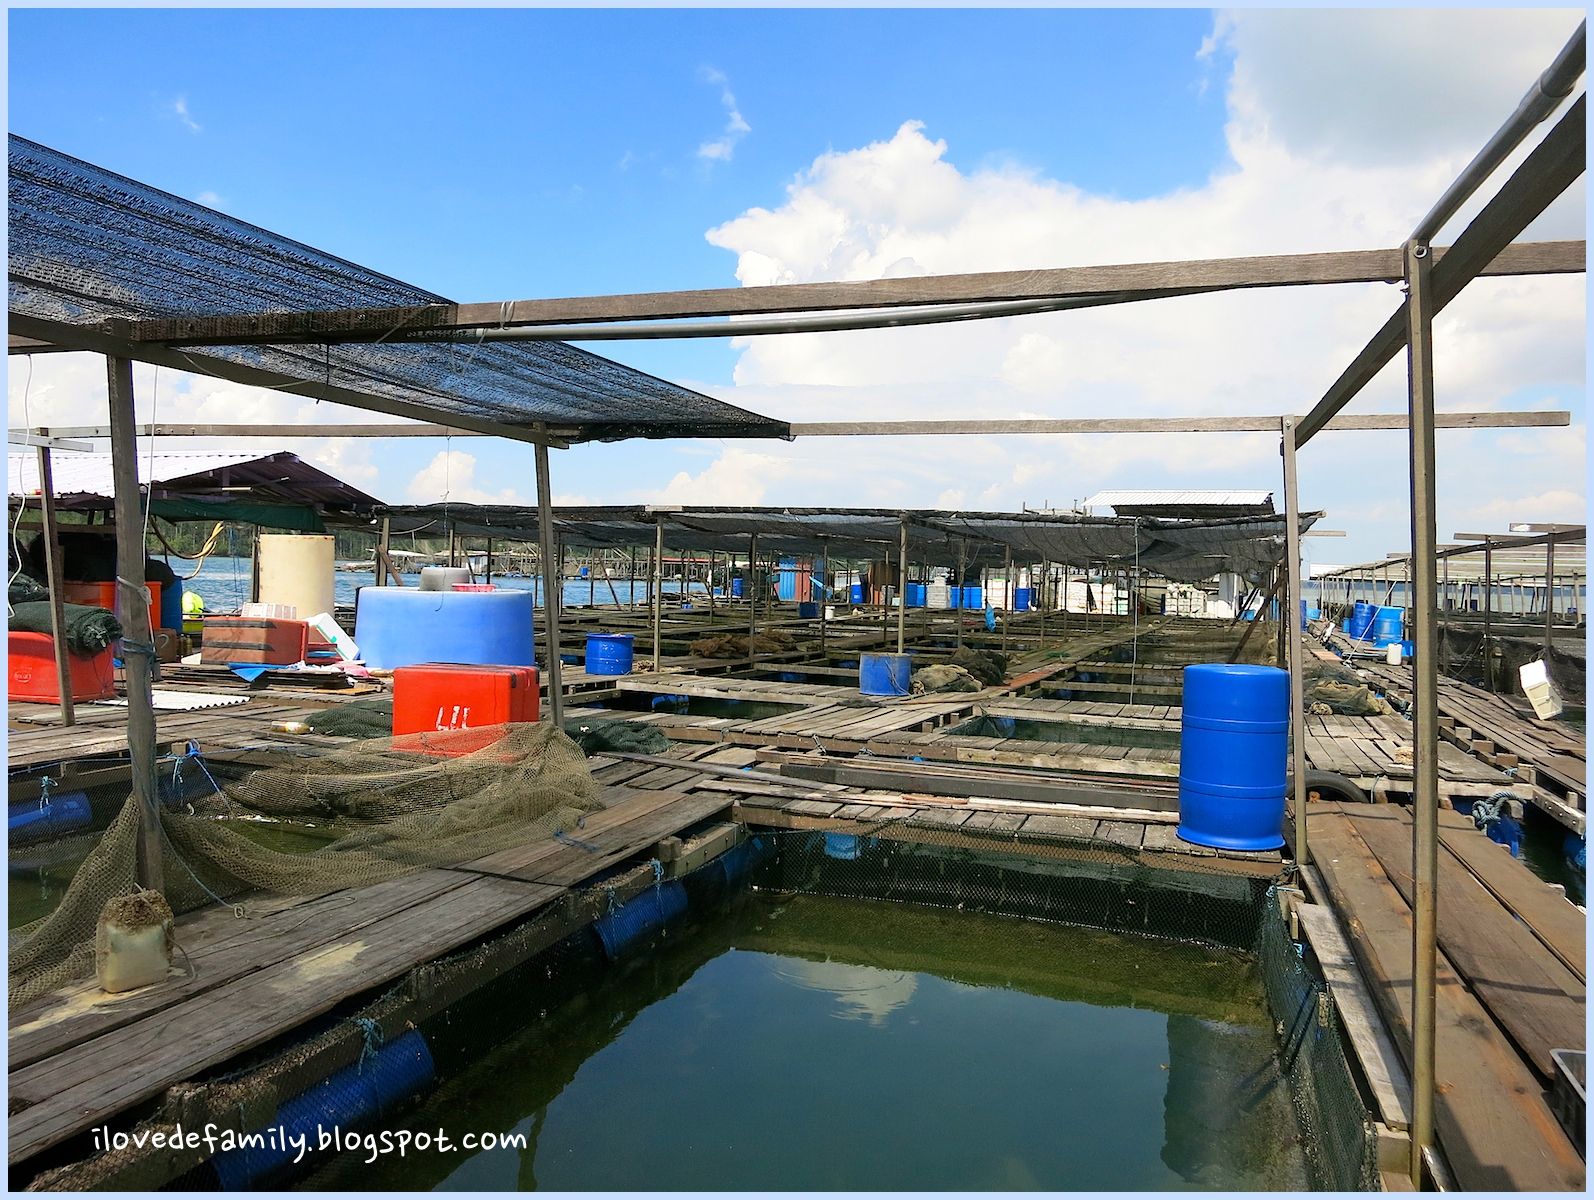 b c d e that s us our first time to a kelong fish farm